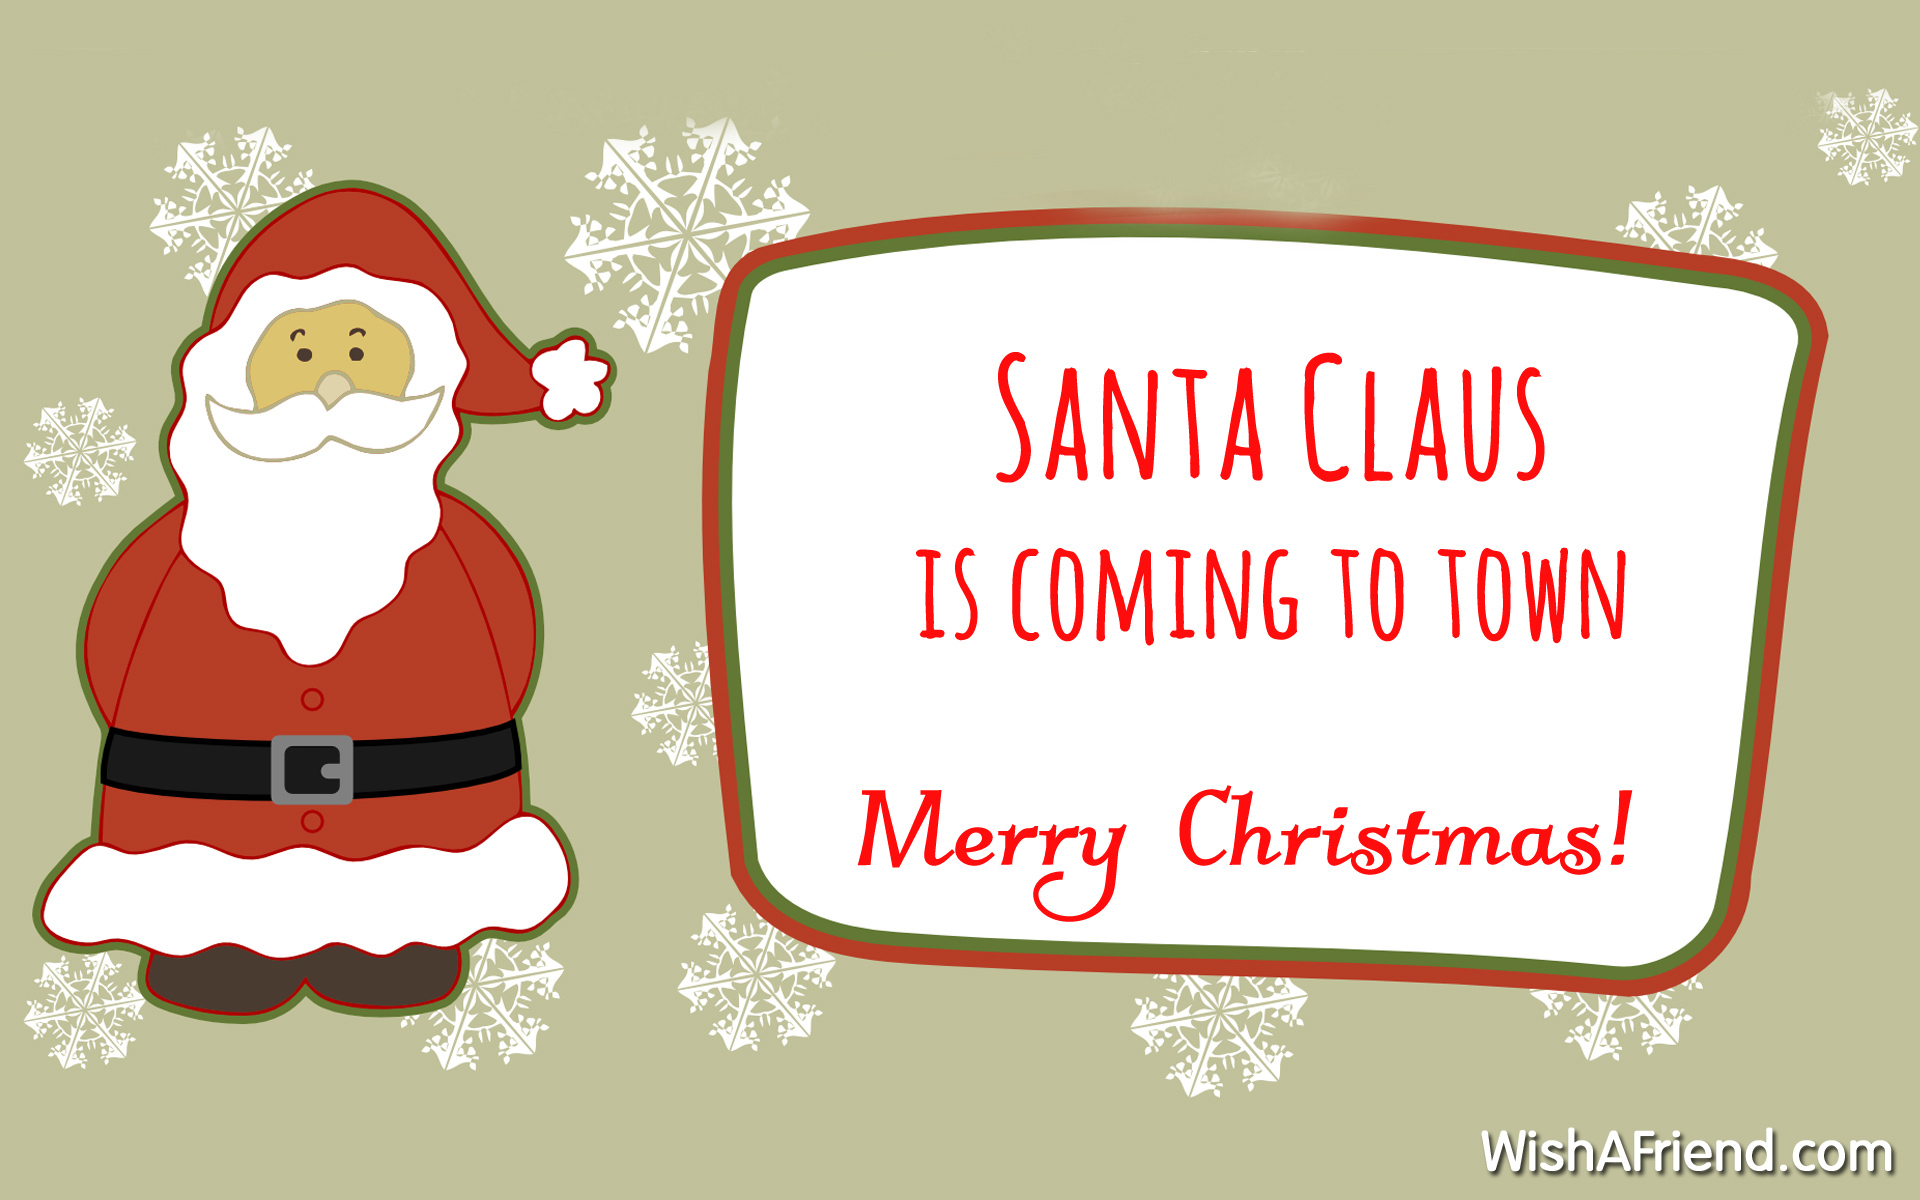 Santa Claus is coming to